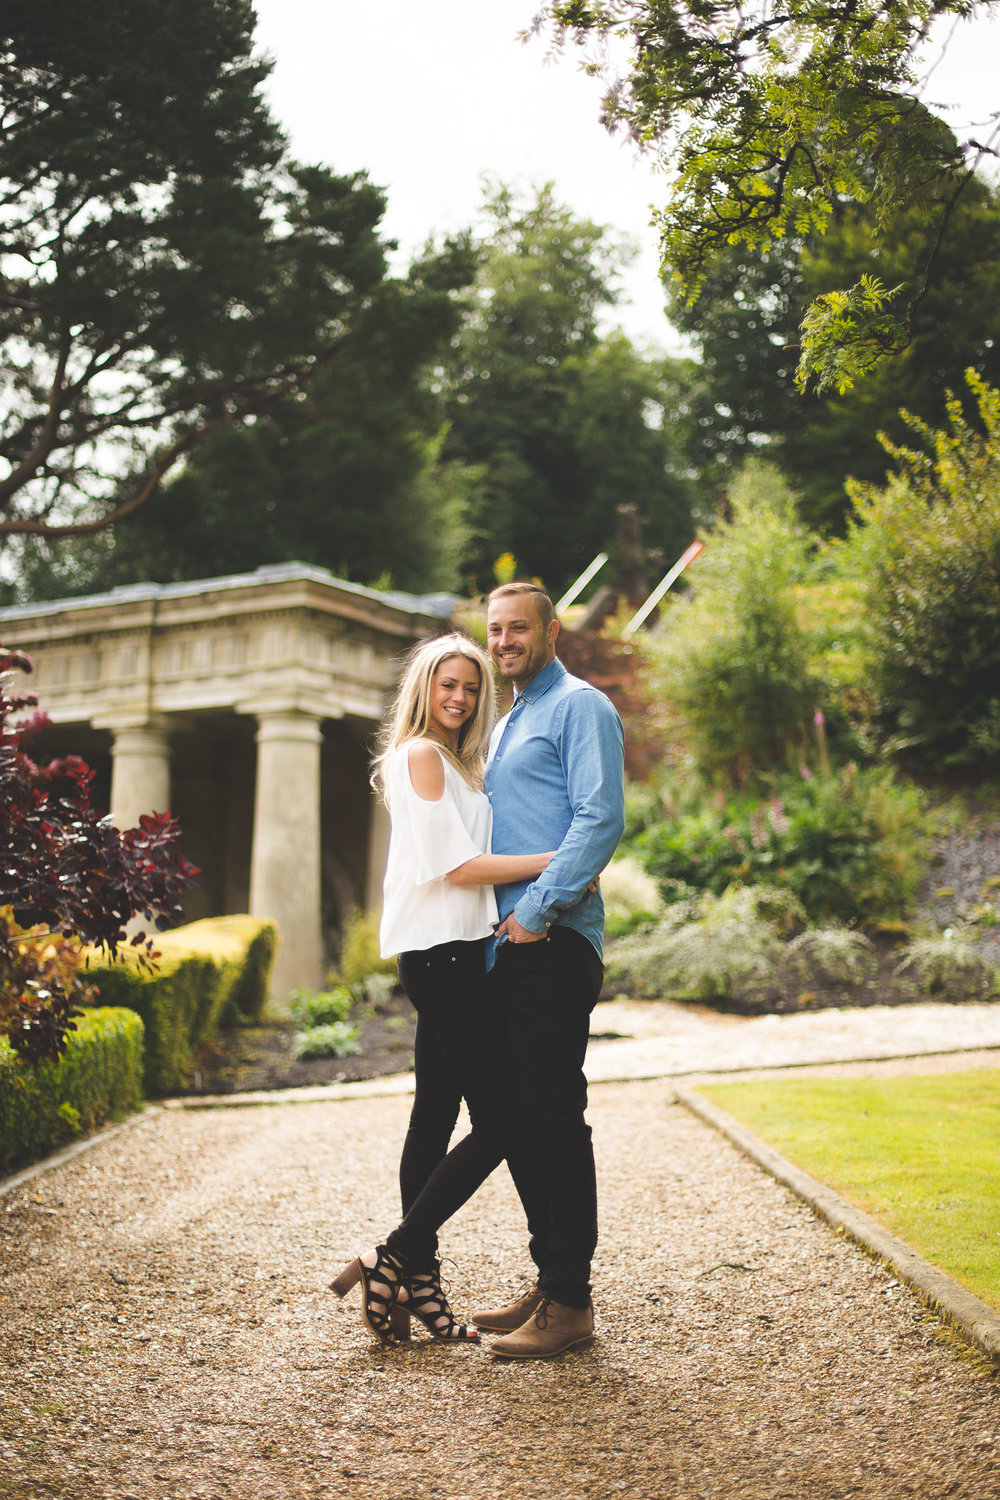 Surrey Wedding Photographer Rowan Laurence015.jpg